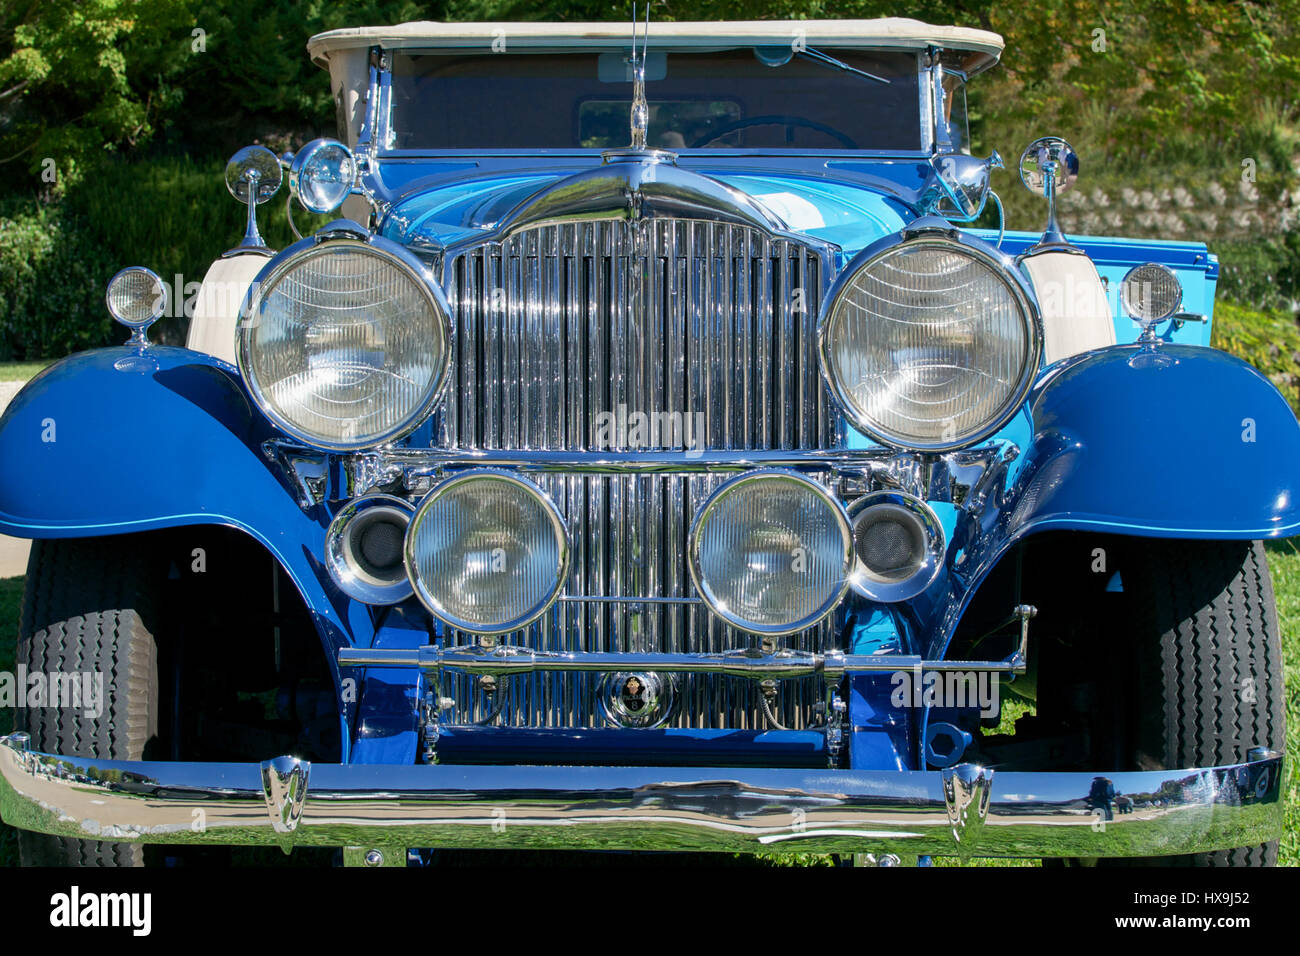 Detail of the front of a vintage car, blue 1932 Packard 902 sport ...